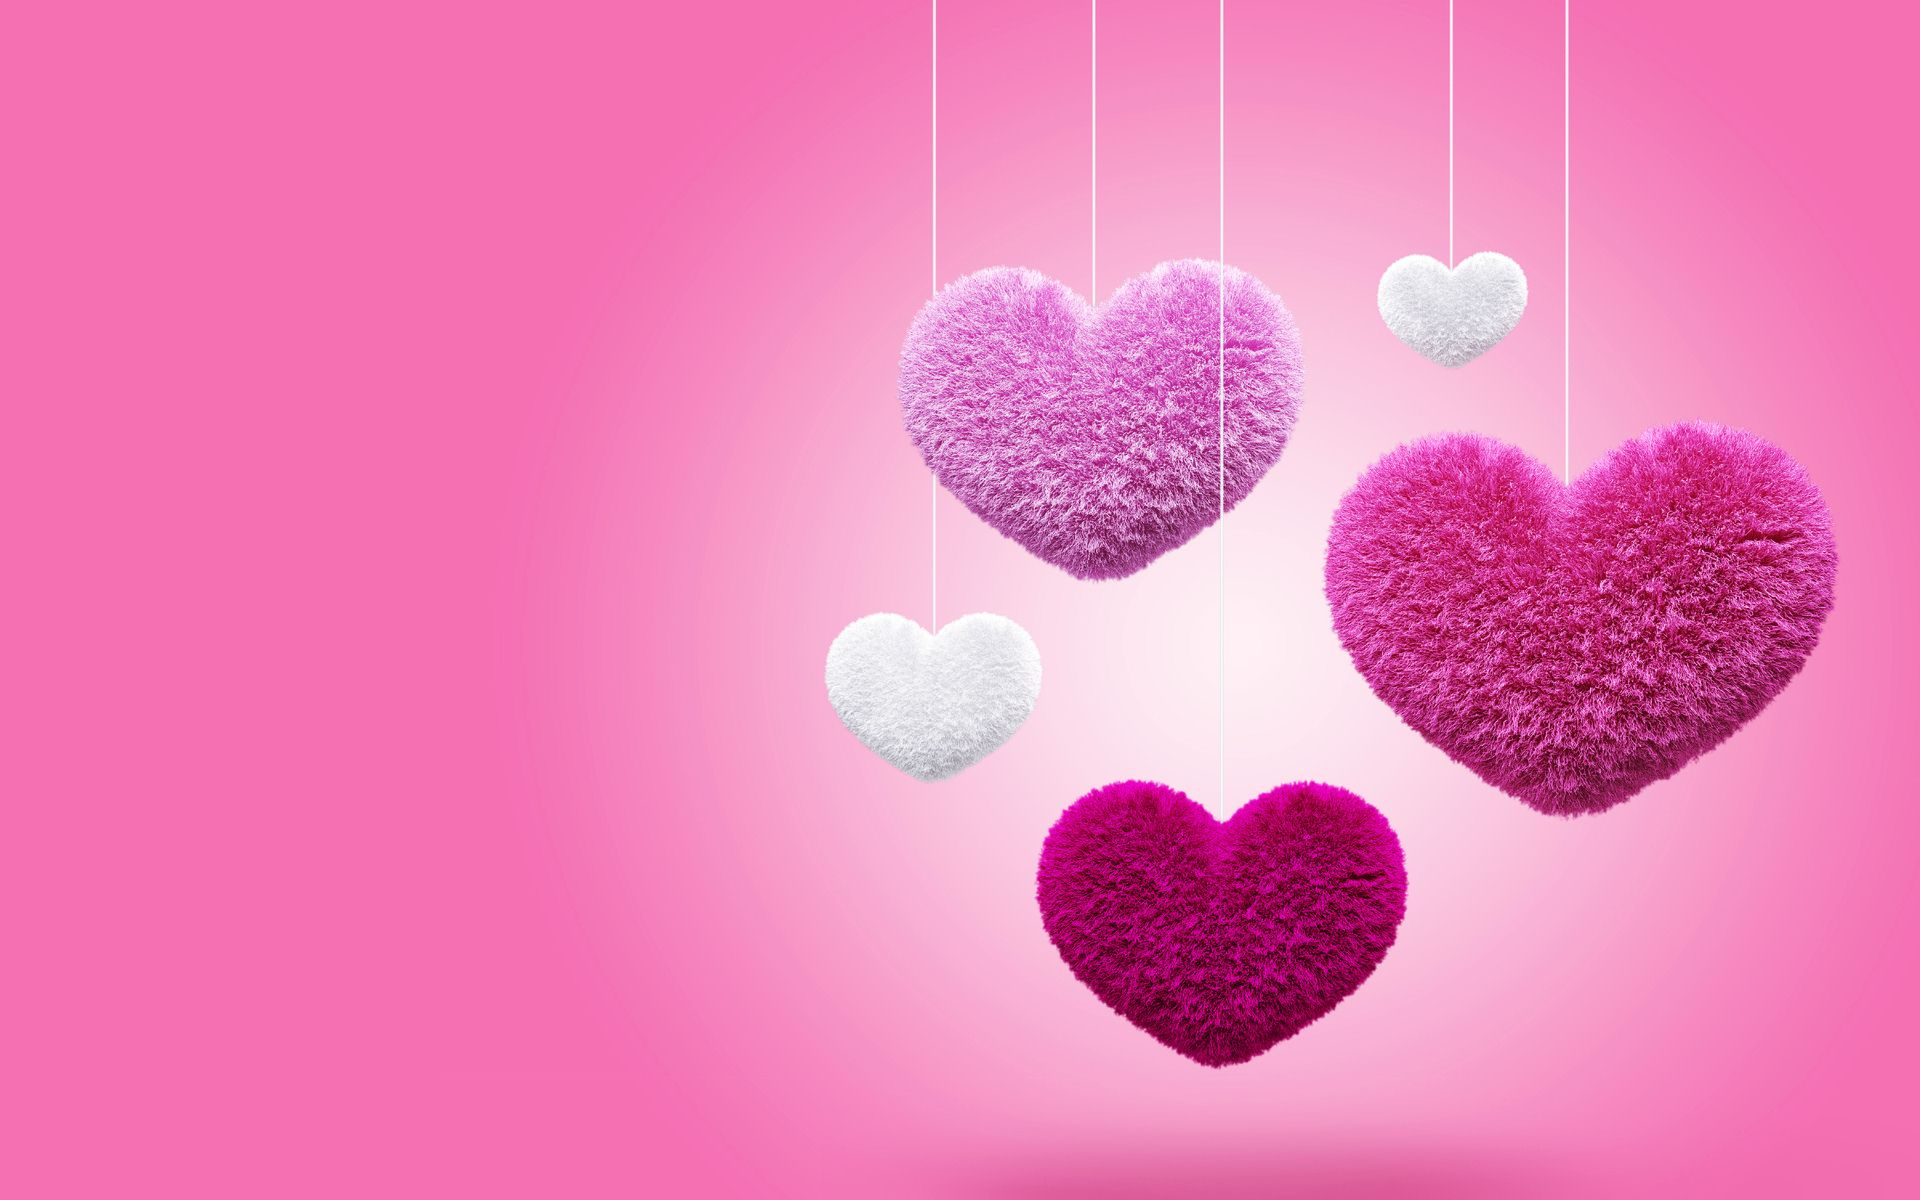 3D Love Heart 17 High Resolution Wallpaper - Hdlovewall.com